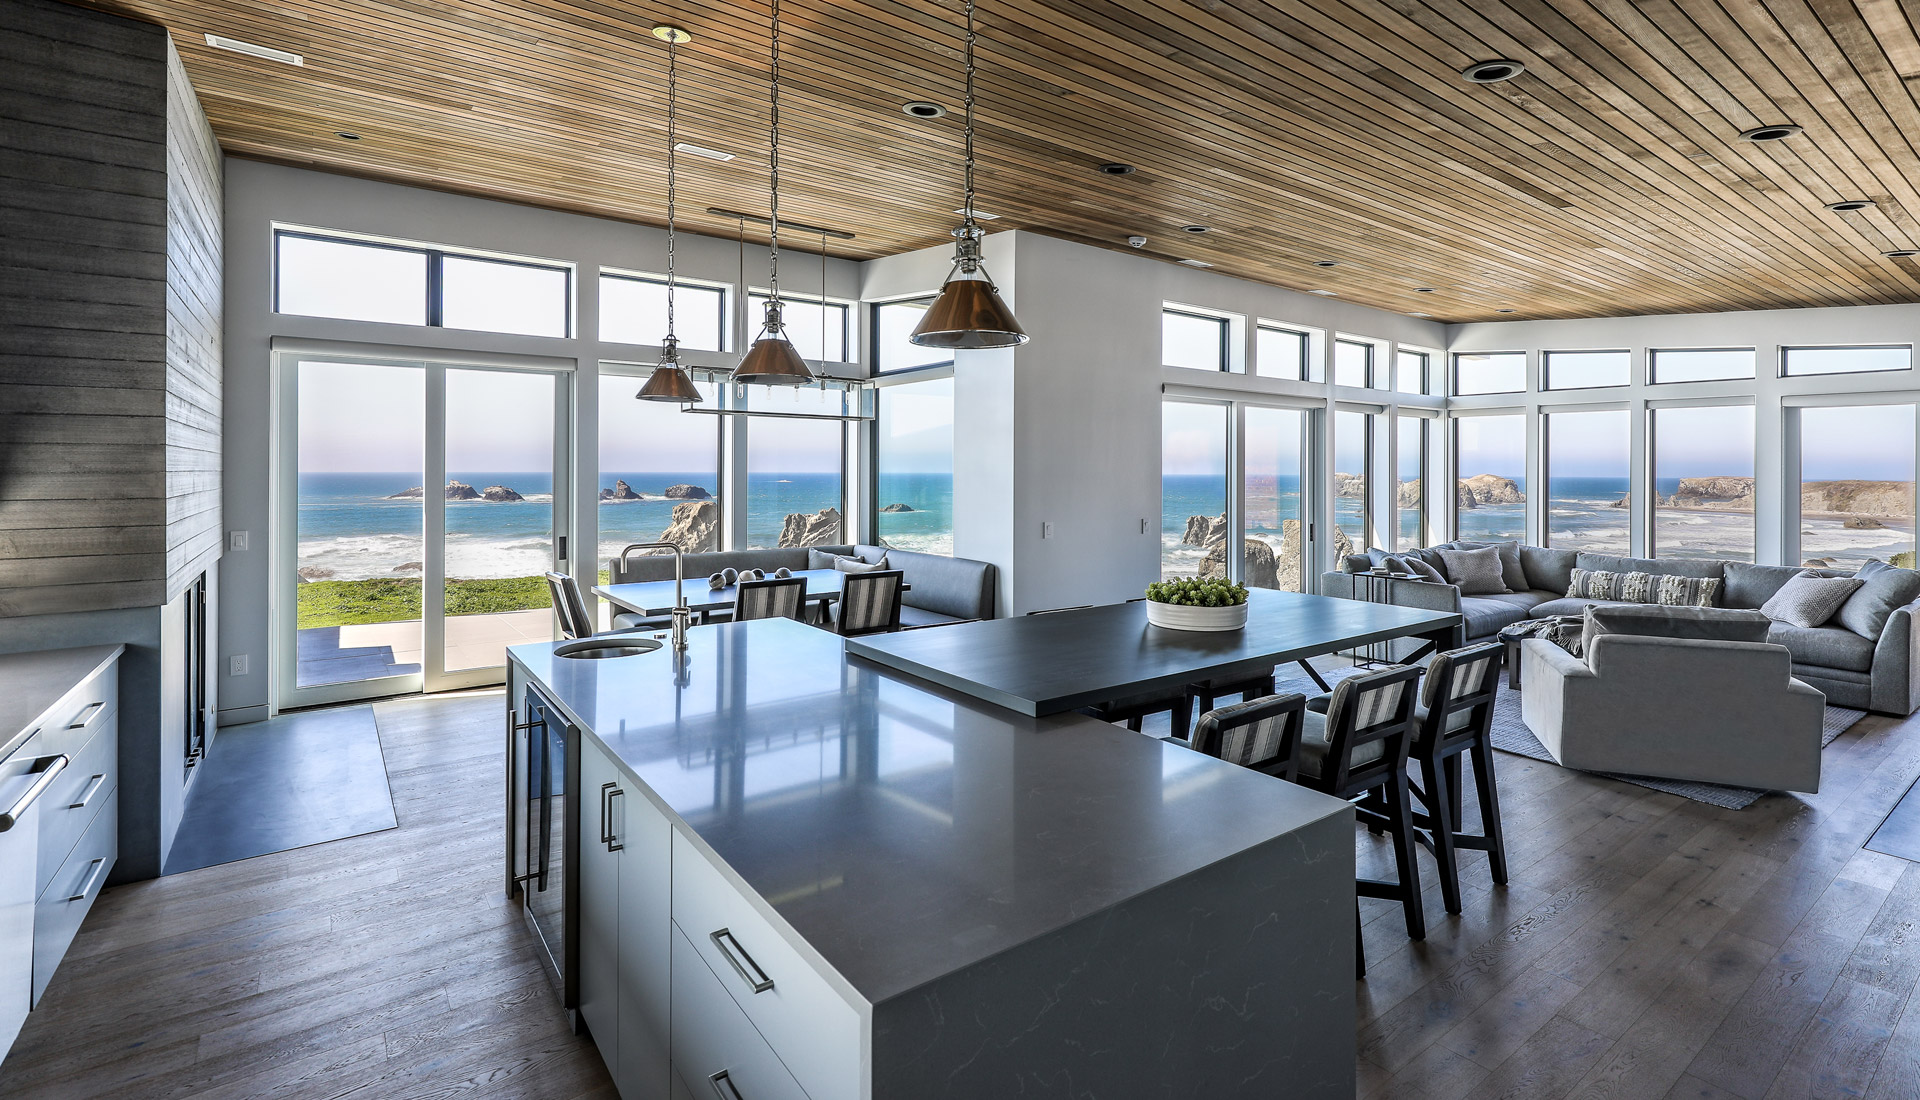 Bandon Kitchen From Island Full Ocean